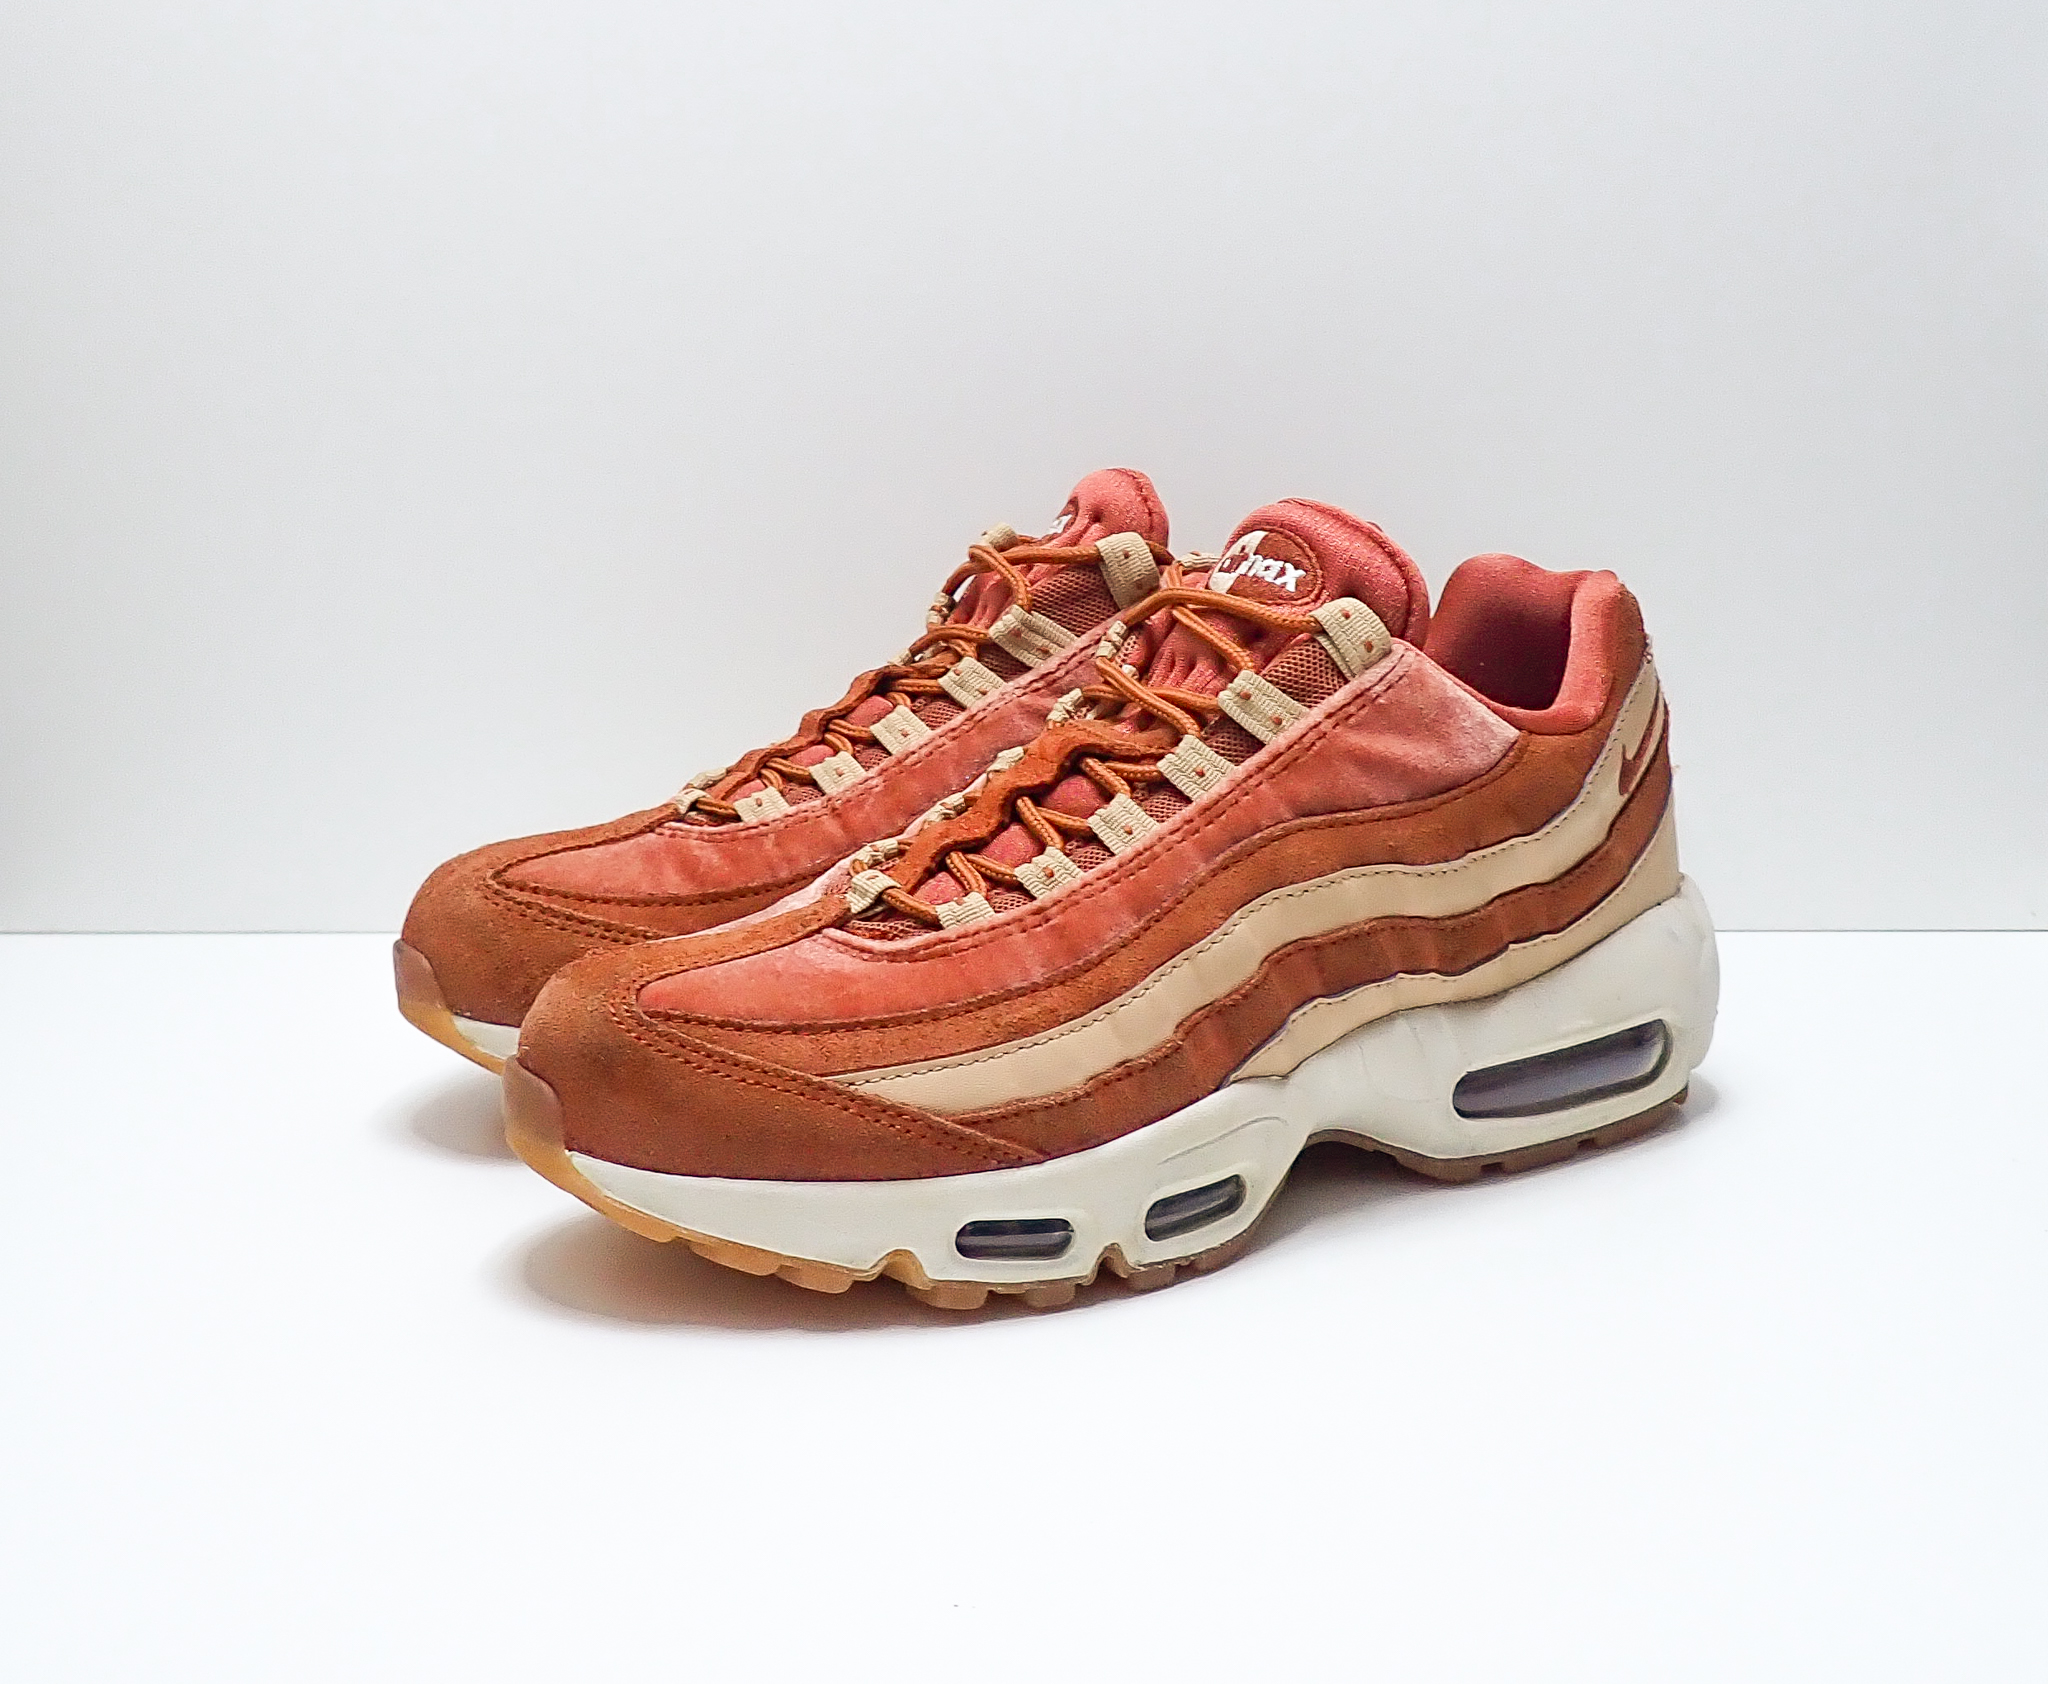 Nike Air Max 95 Dusty Peach